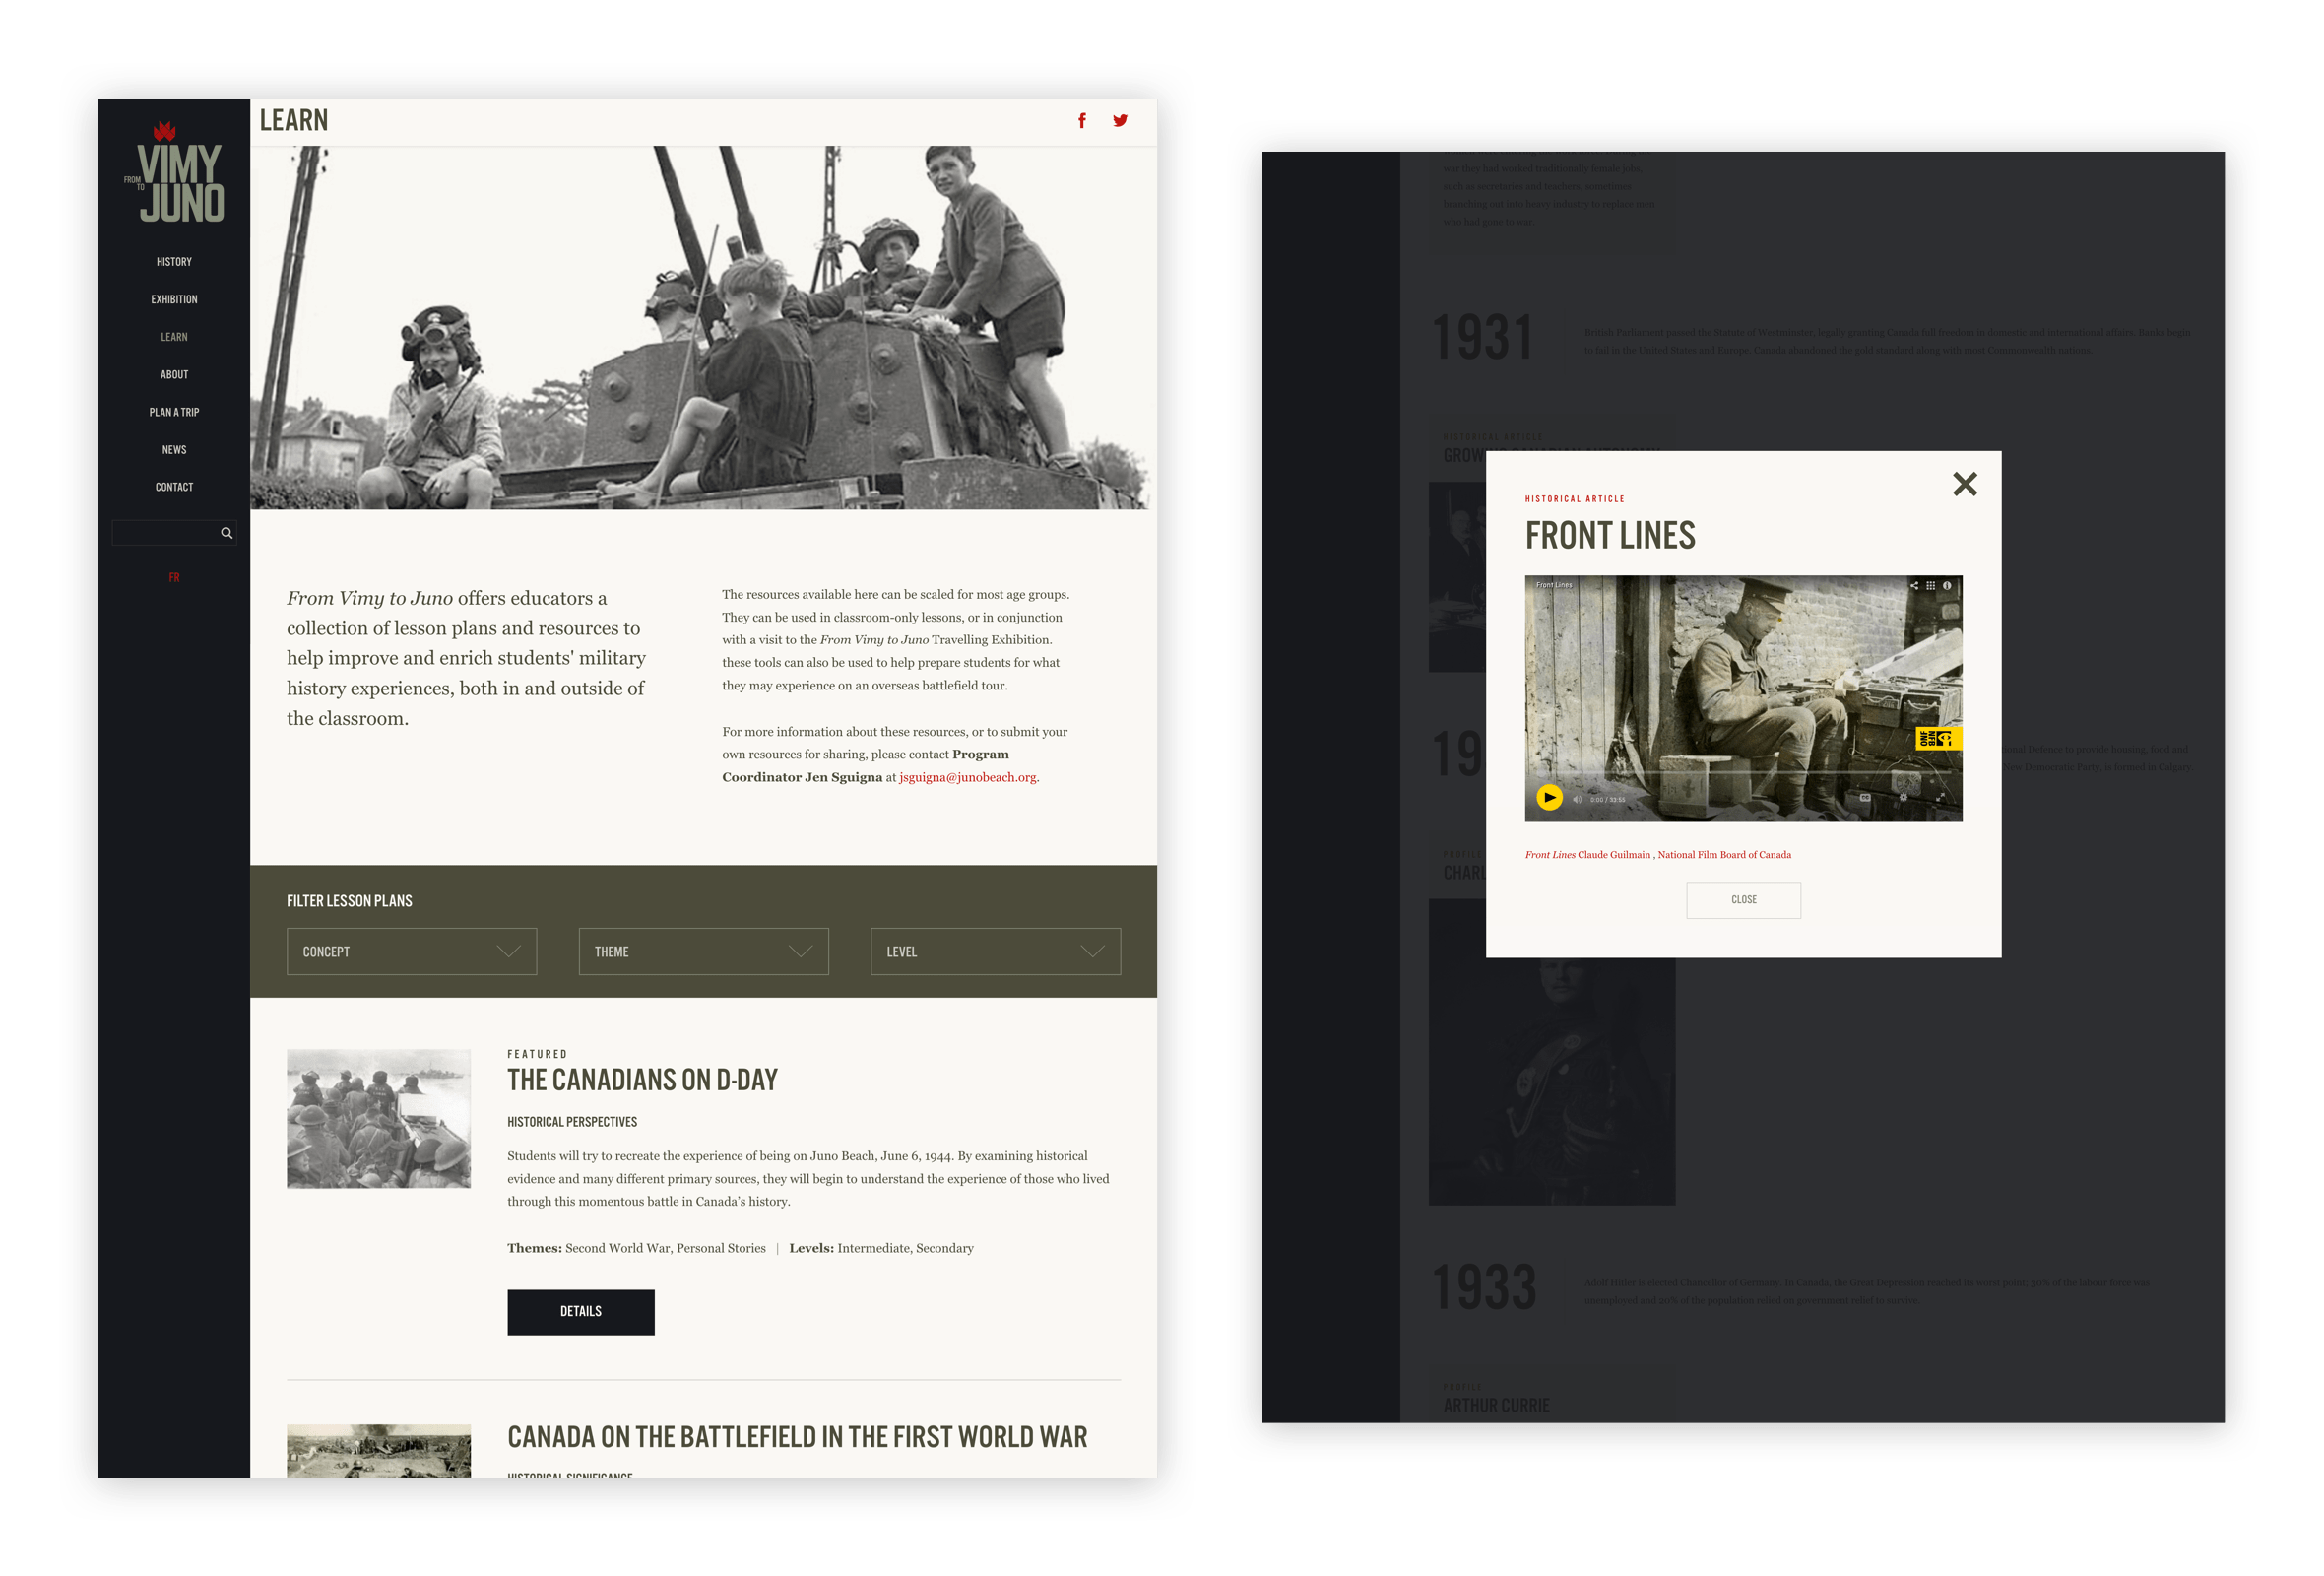 Desktop visual of a learning resource about Vimy to Juno